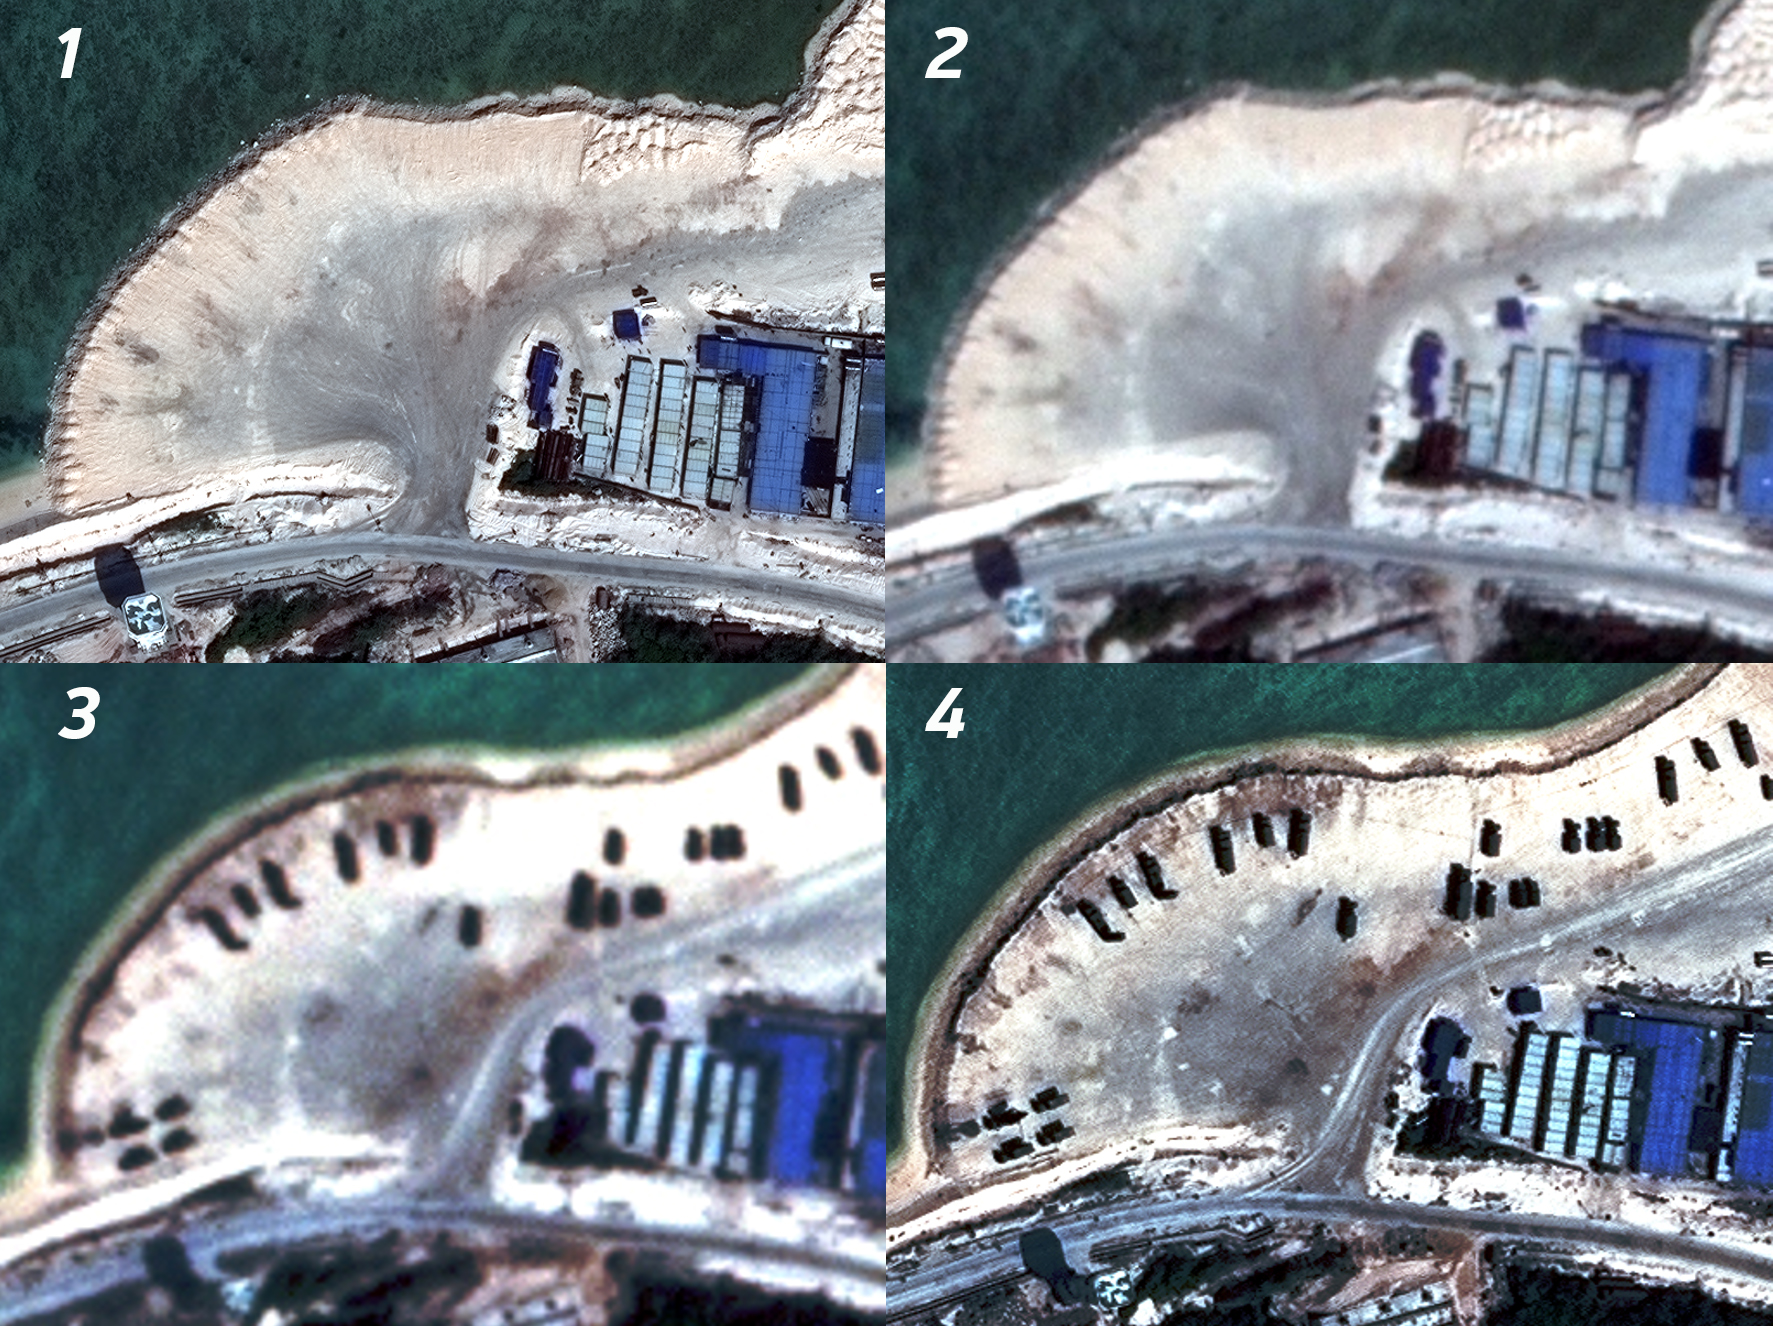 , WorldView-3 images the coastline of this small island, showing an empty beach (figure 1, 30 cm GSD); then, a small satellite flying directly over the island captures an image, showing no change (figure 2, 80 cm GSD); hours later, another small satellite takes an off-nadir image of the area, detecting a new presence on the beach. (figure 3, 1.3 m GSD); this cues WorldView-2 to take a closer look, showing military vehicles and equipment that an analyst could identify. (figure 4, 50 cm GSD).